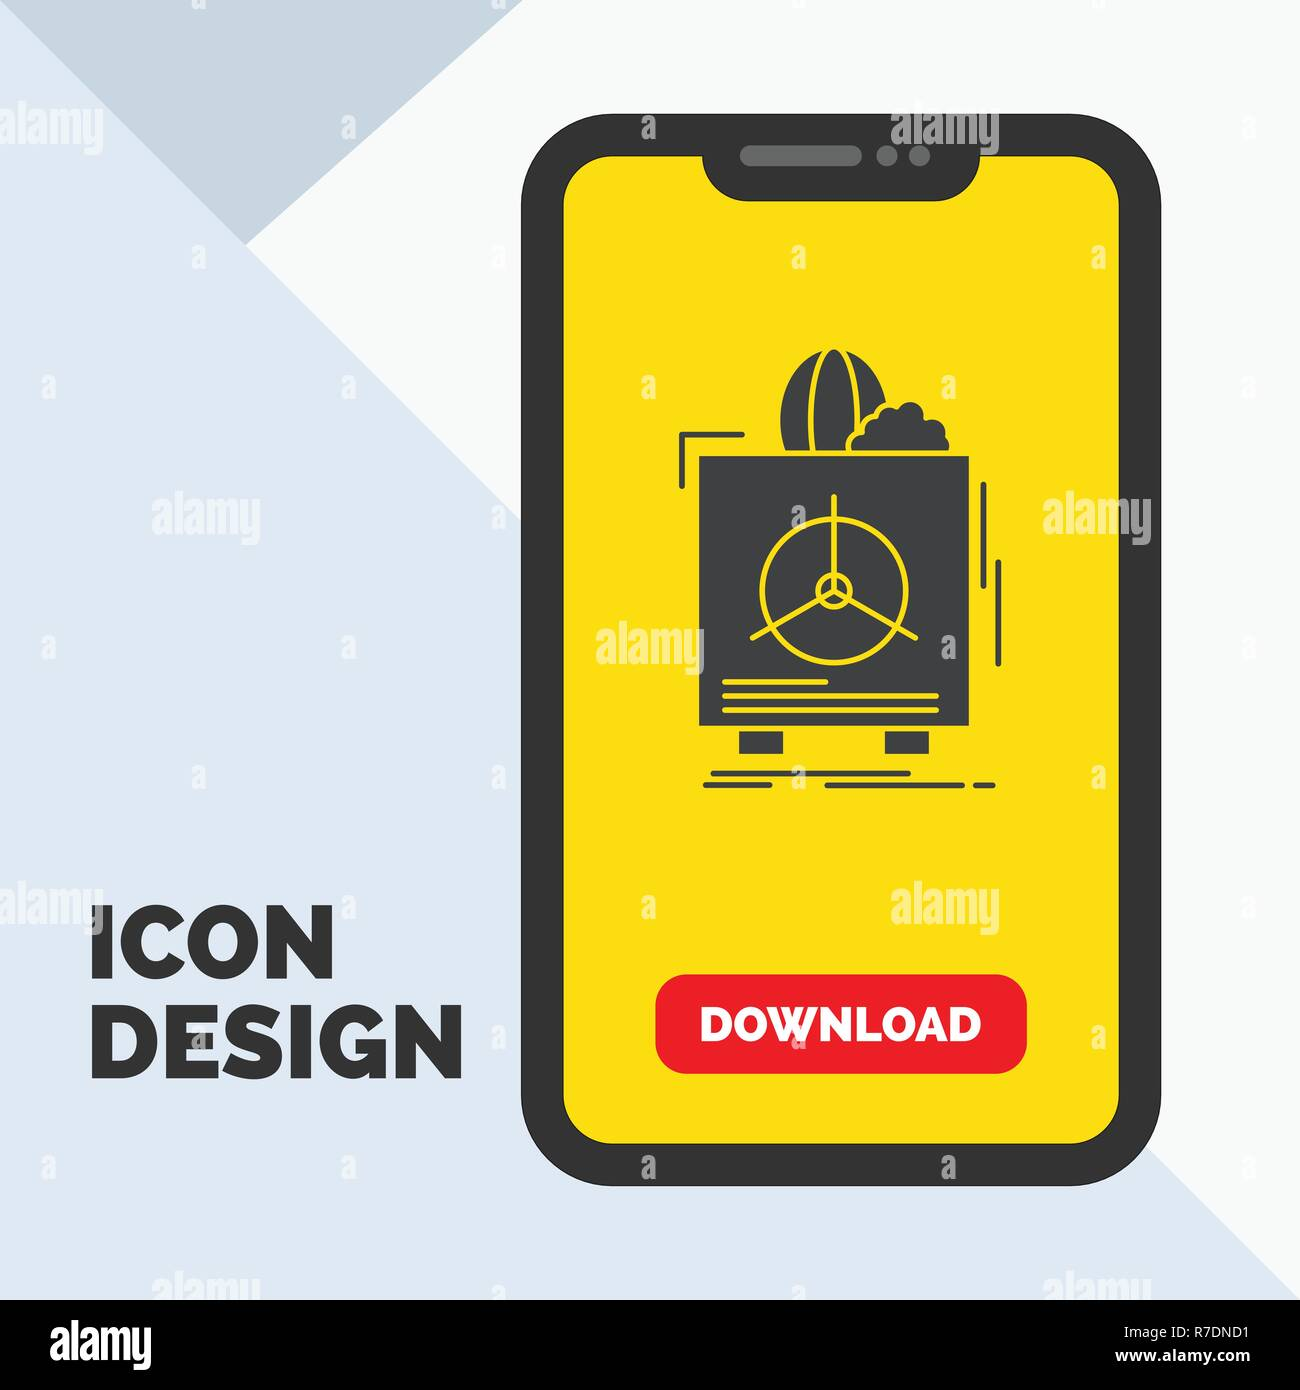 insurance, Fragile, product, warranty, health Glyph Icon in Mobile for Download Page. Yellow Background - Stock Vector